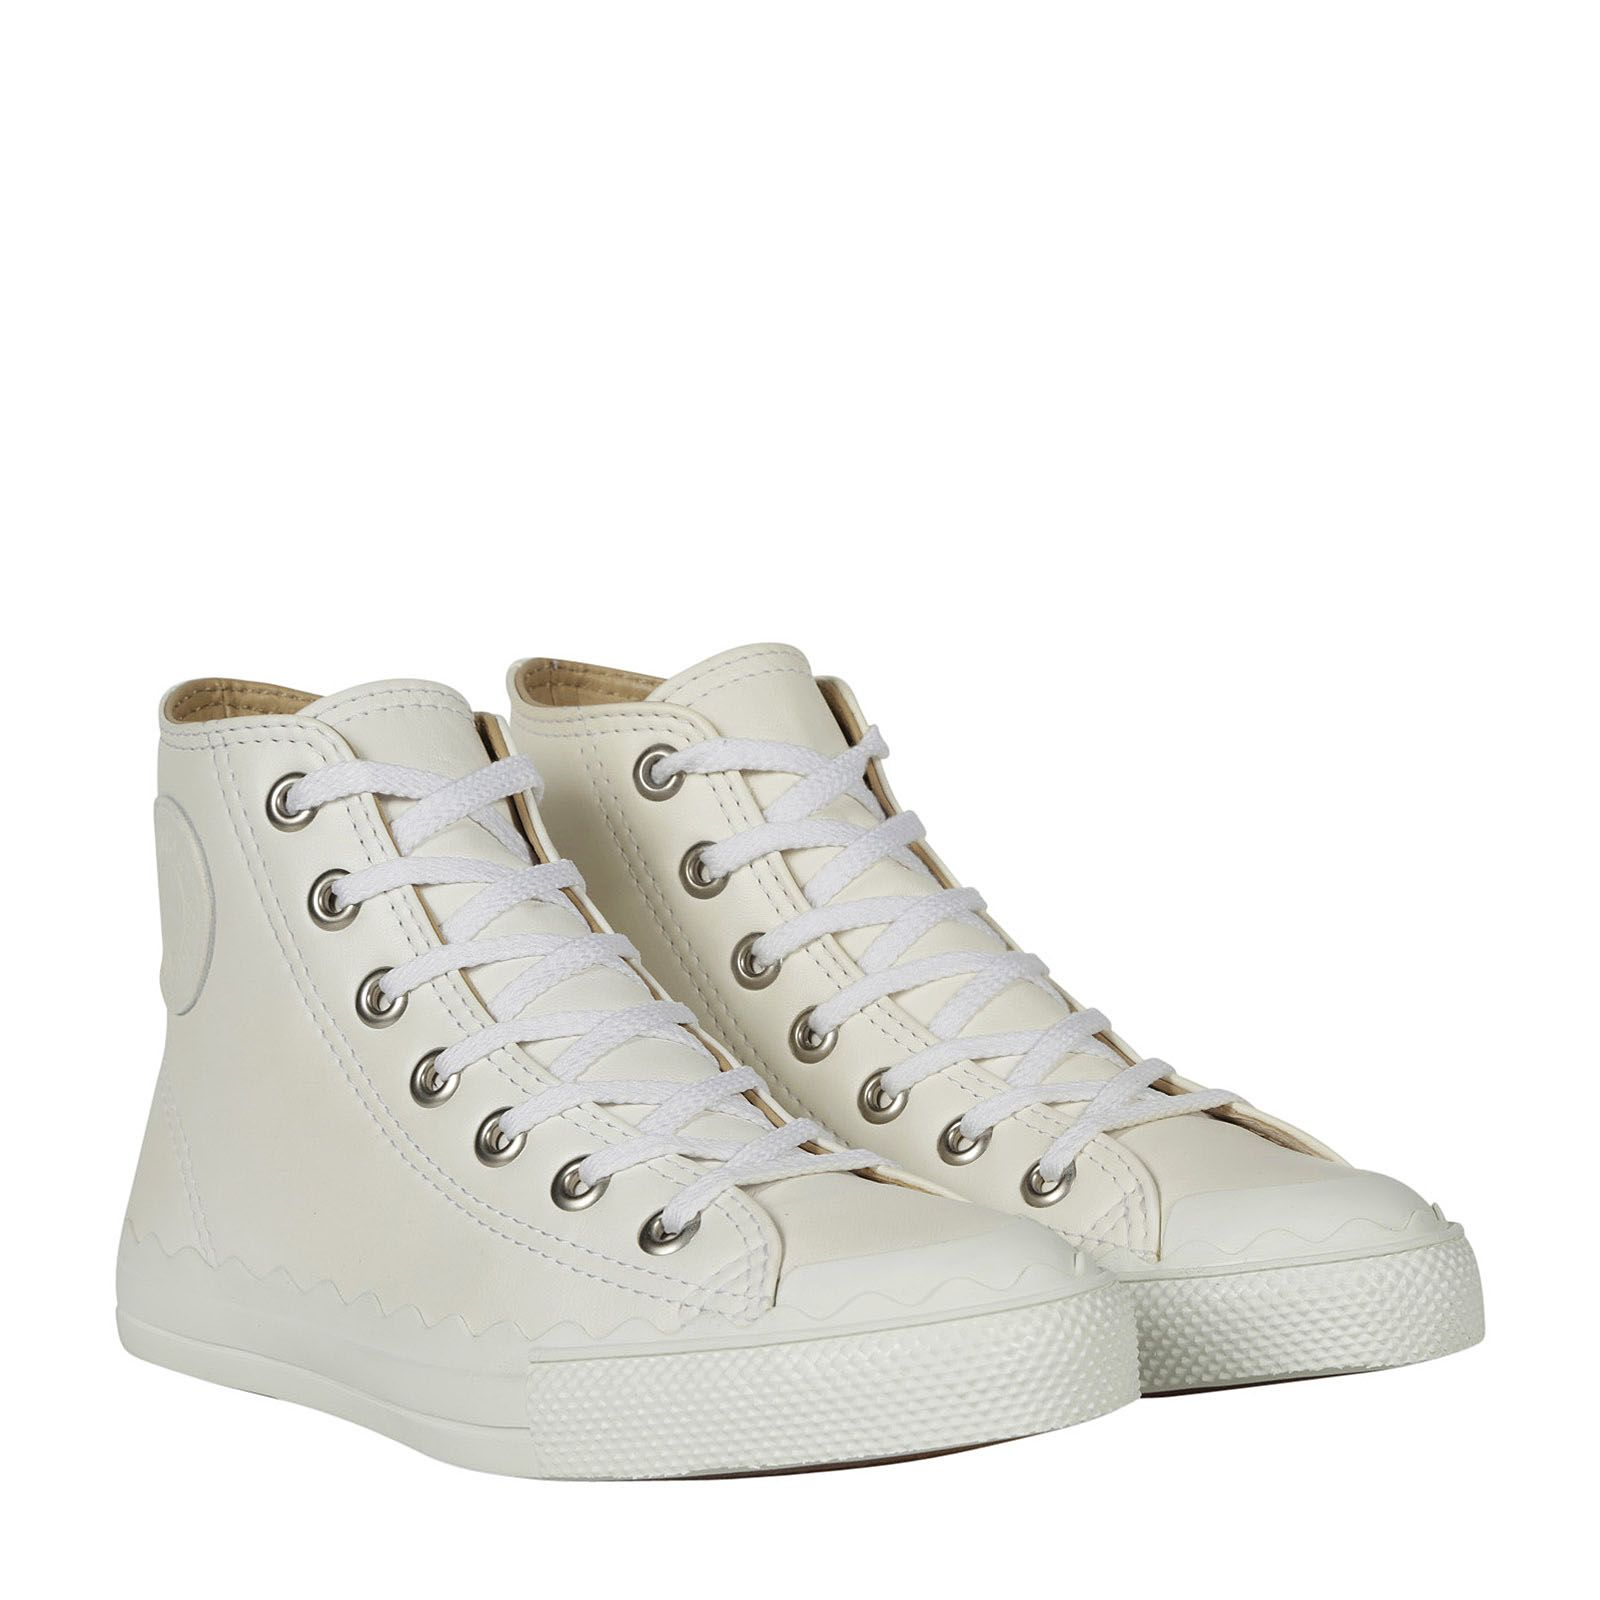 Chlo 201 Scalloped Leather High Top Sneaker White Modesens